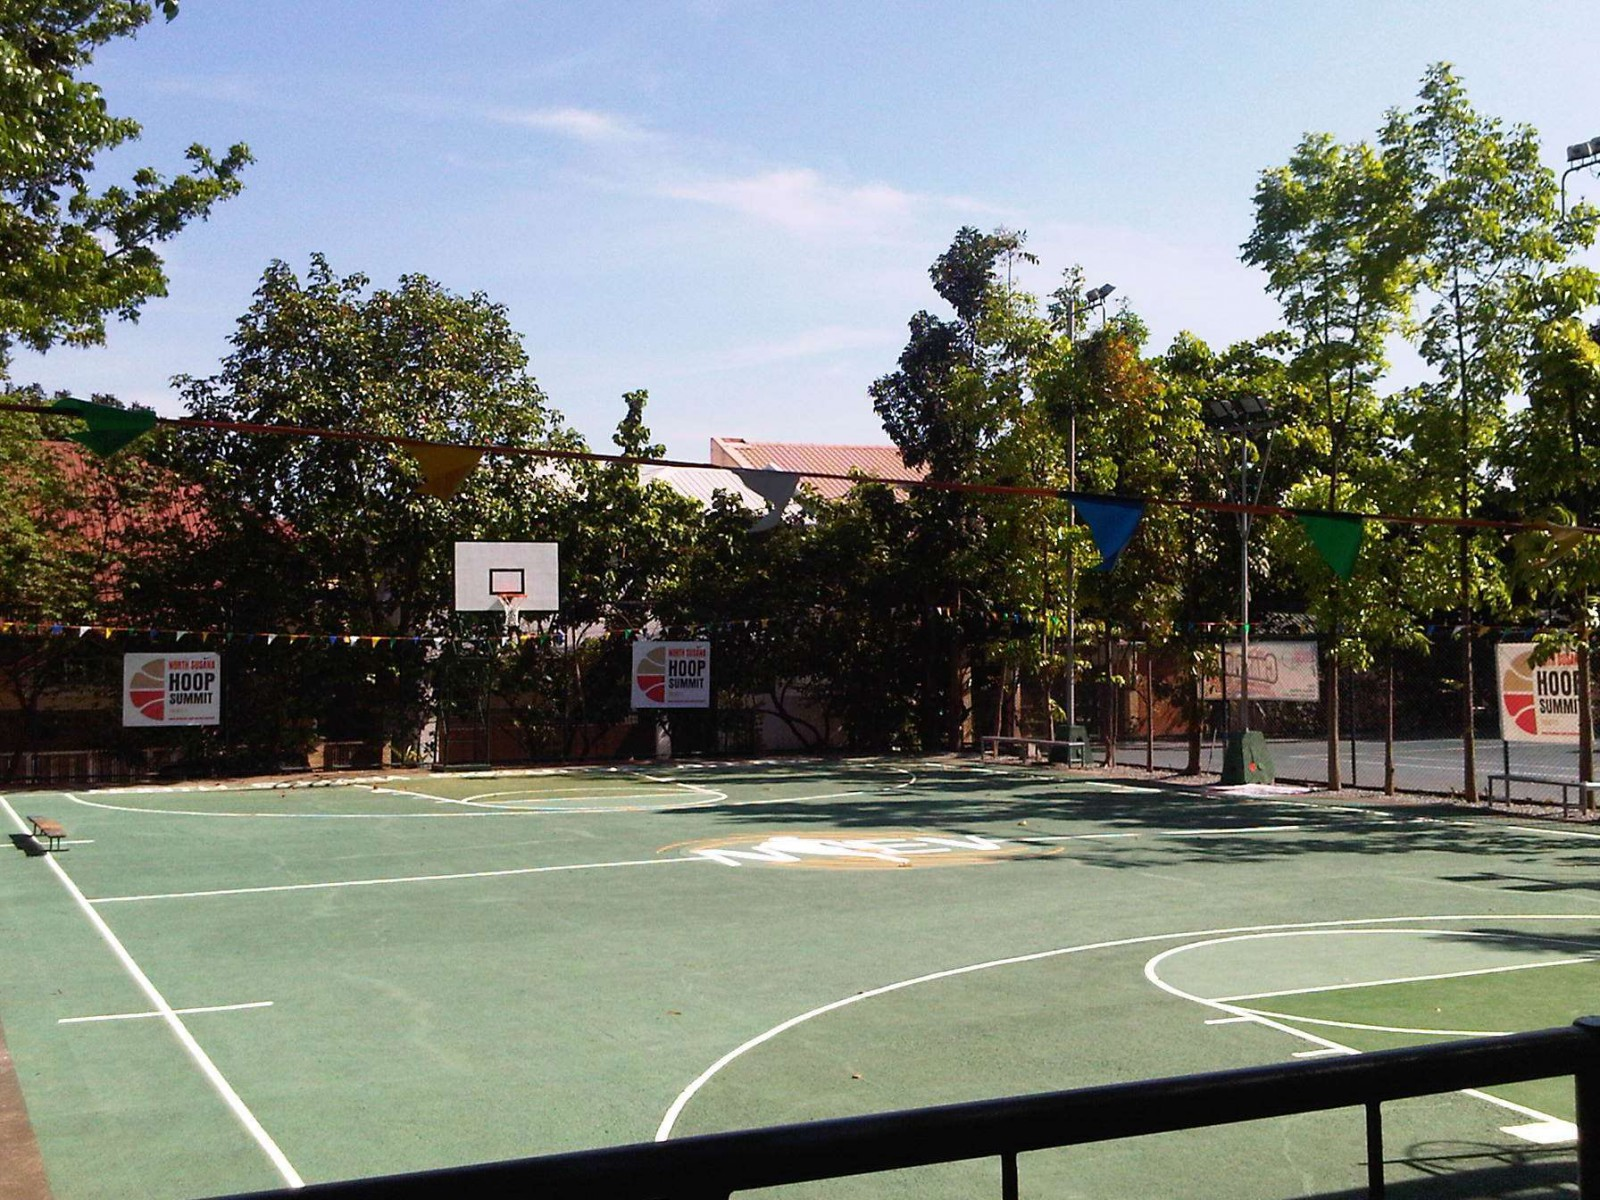 North Susana Basketball Court, Quezon City, Philippines